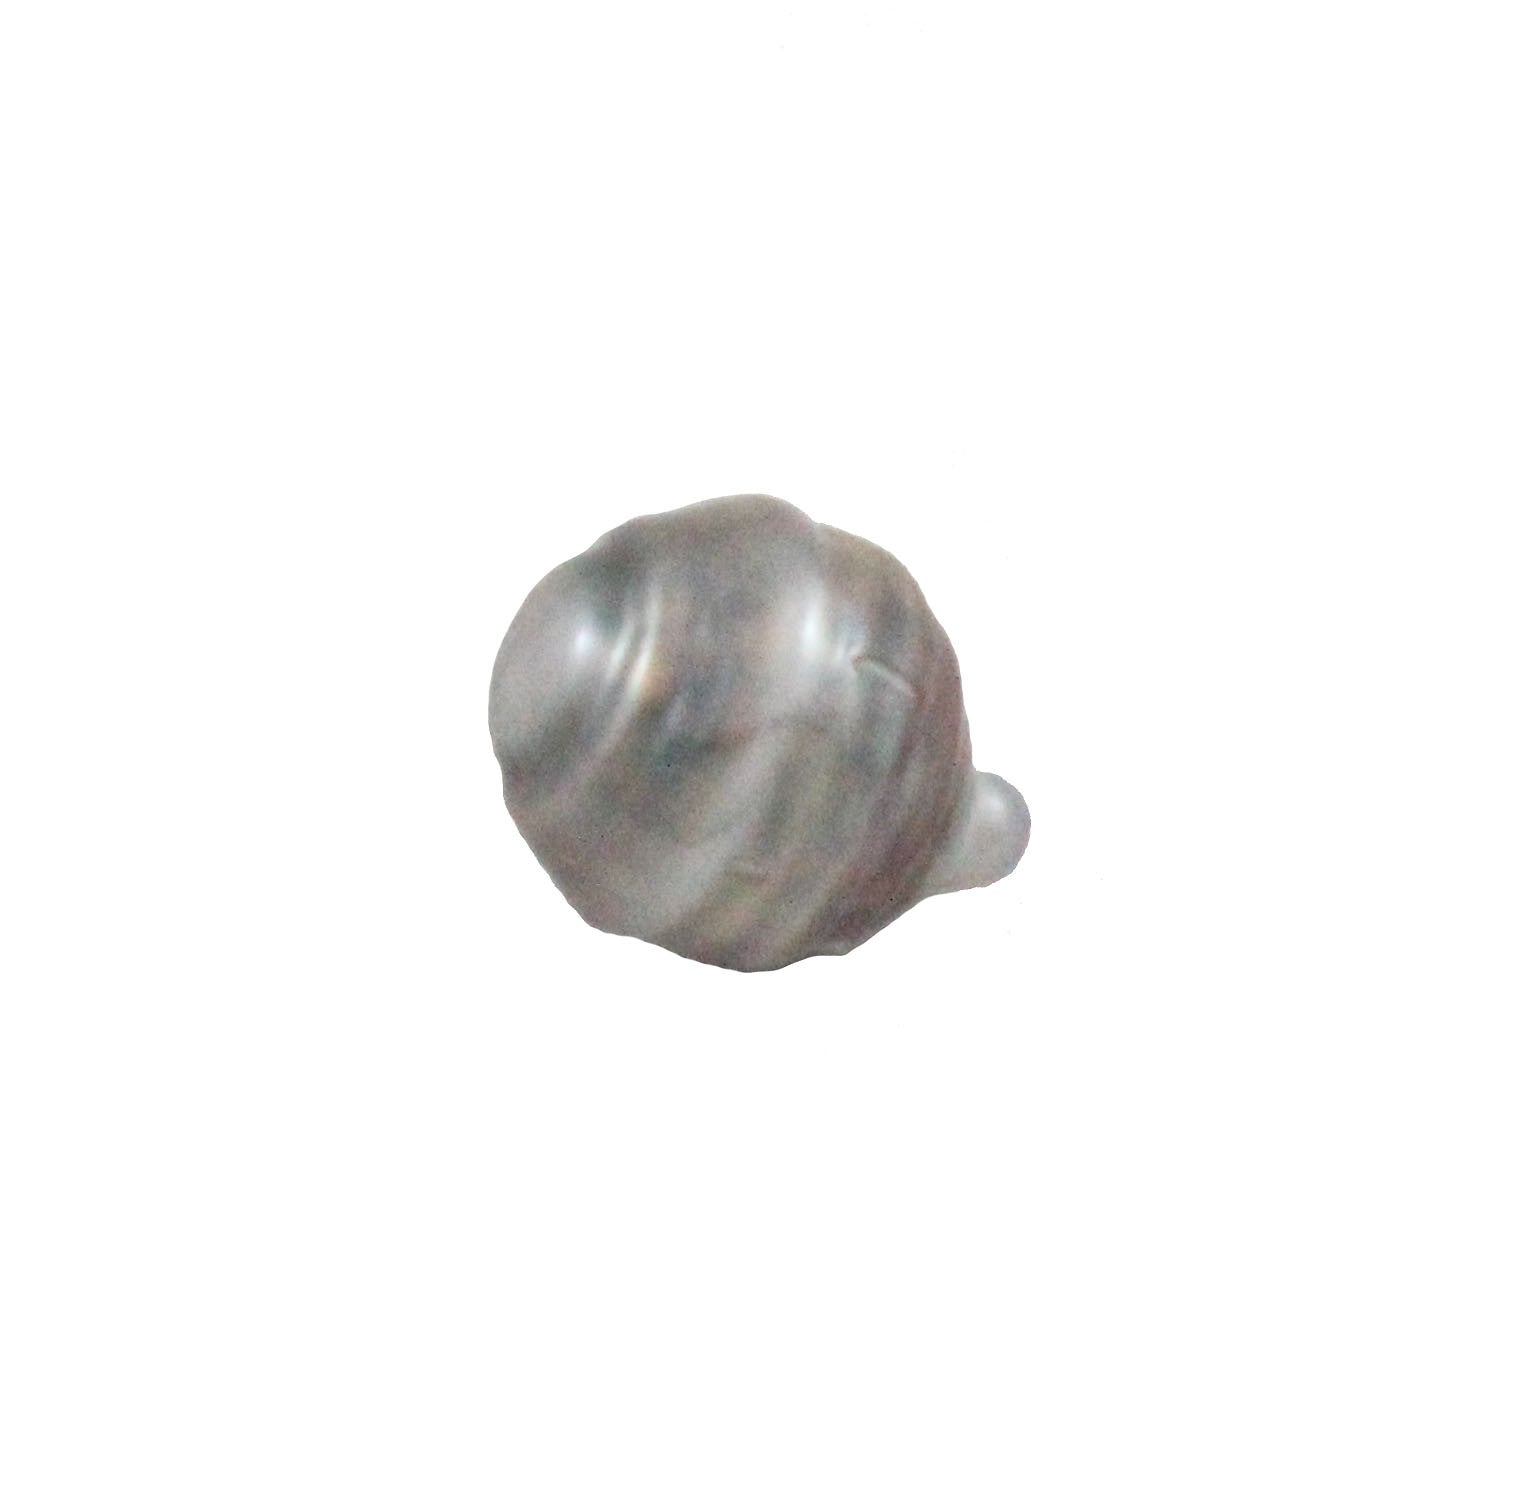 Tahitian pearl undrilled 0.94gr mm 11.11x8.64mm - Purchase only with custom order - Sarah Hughes - 4